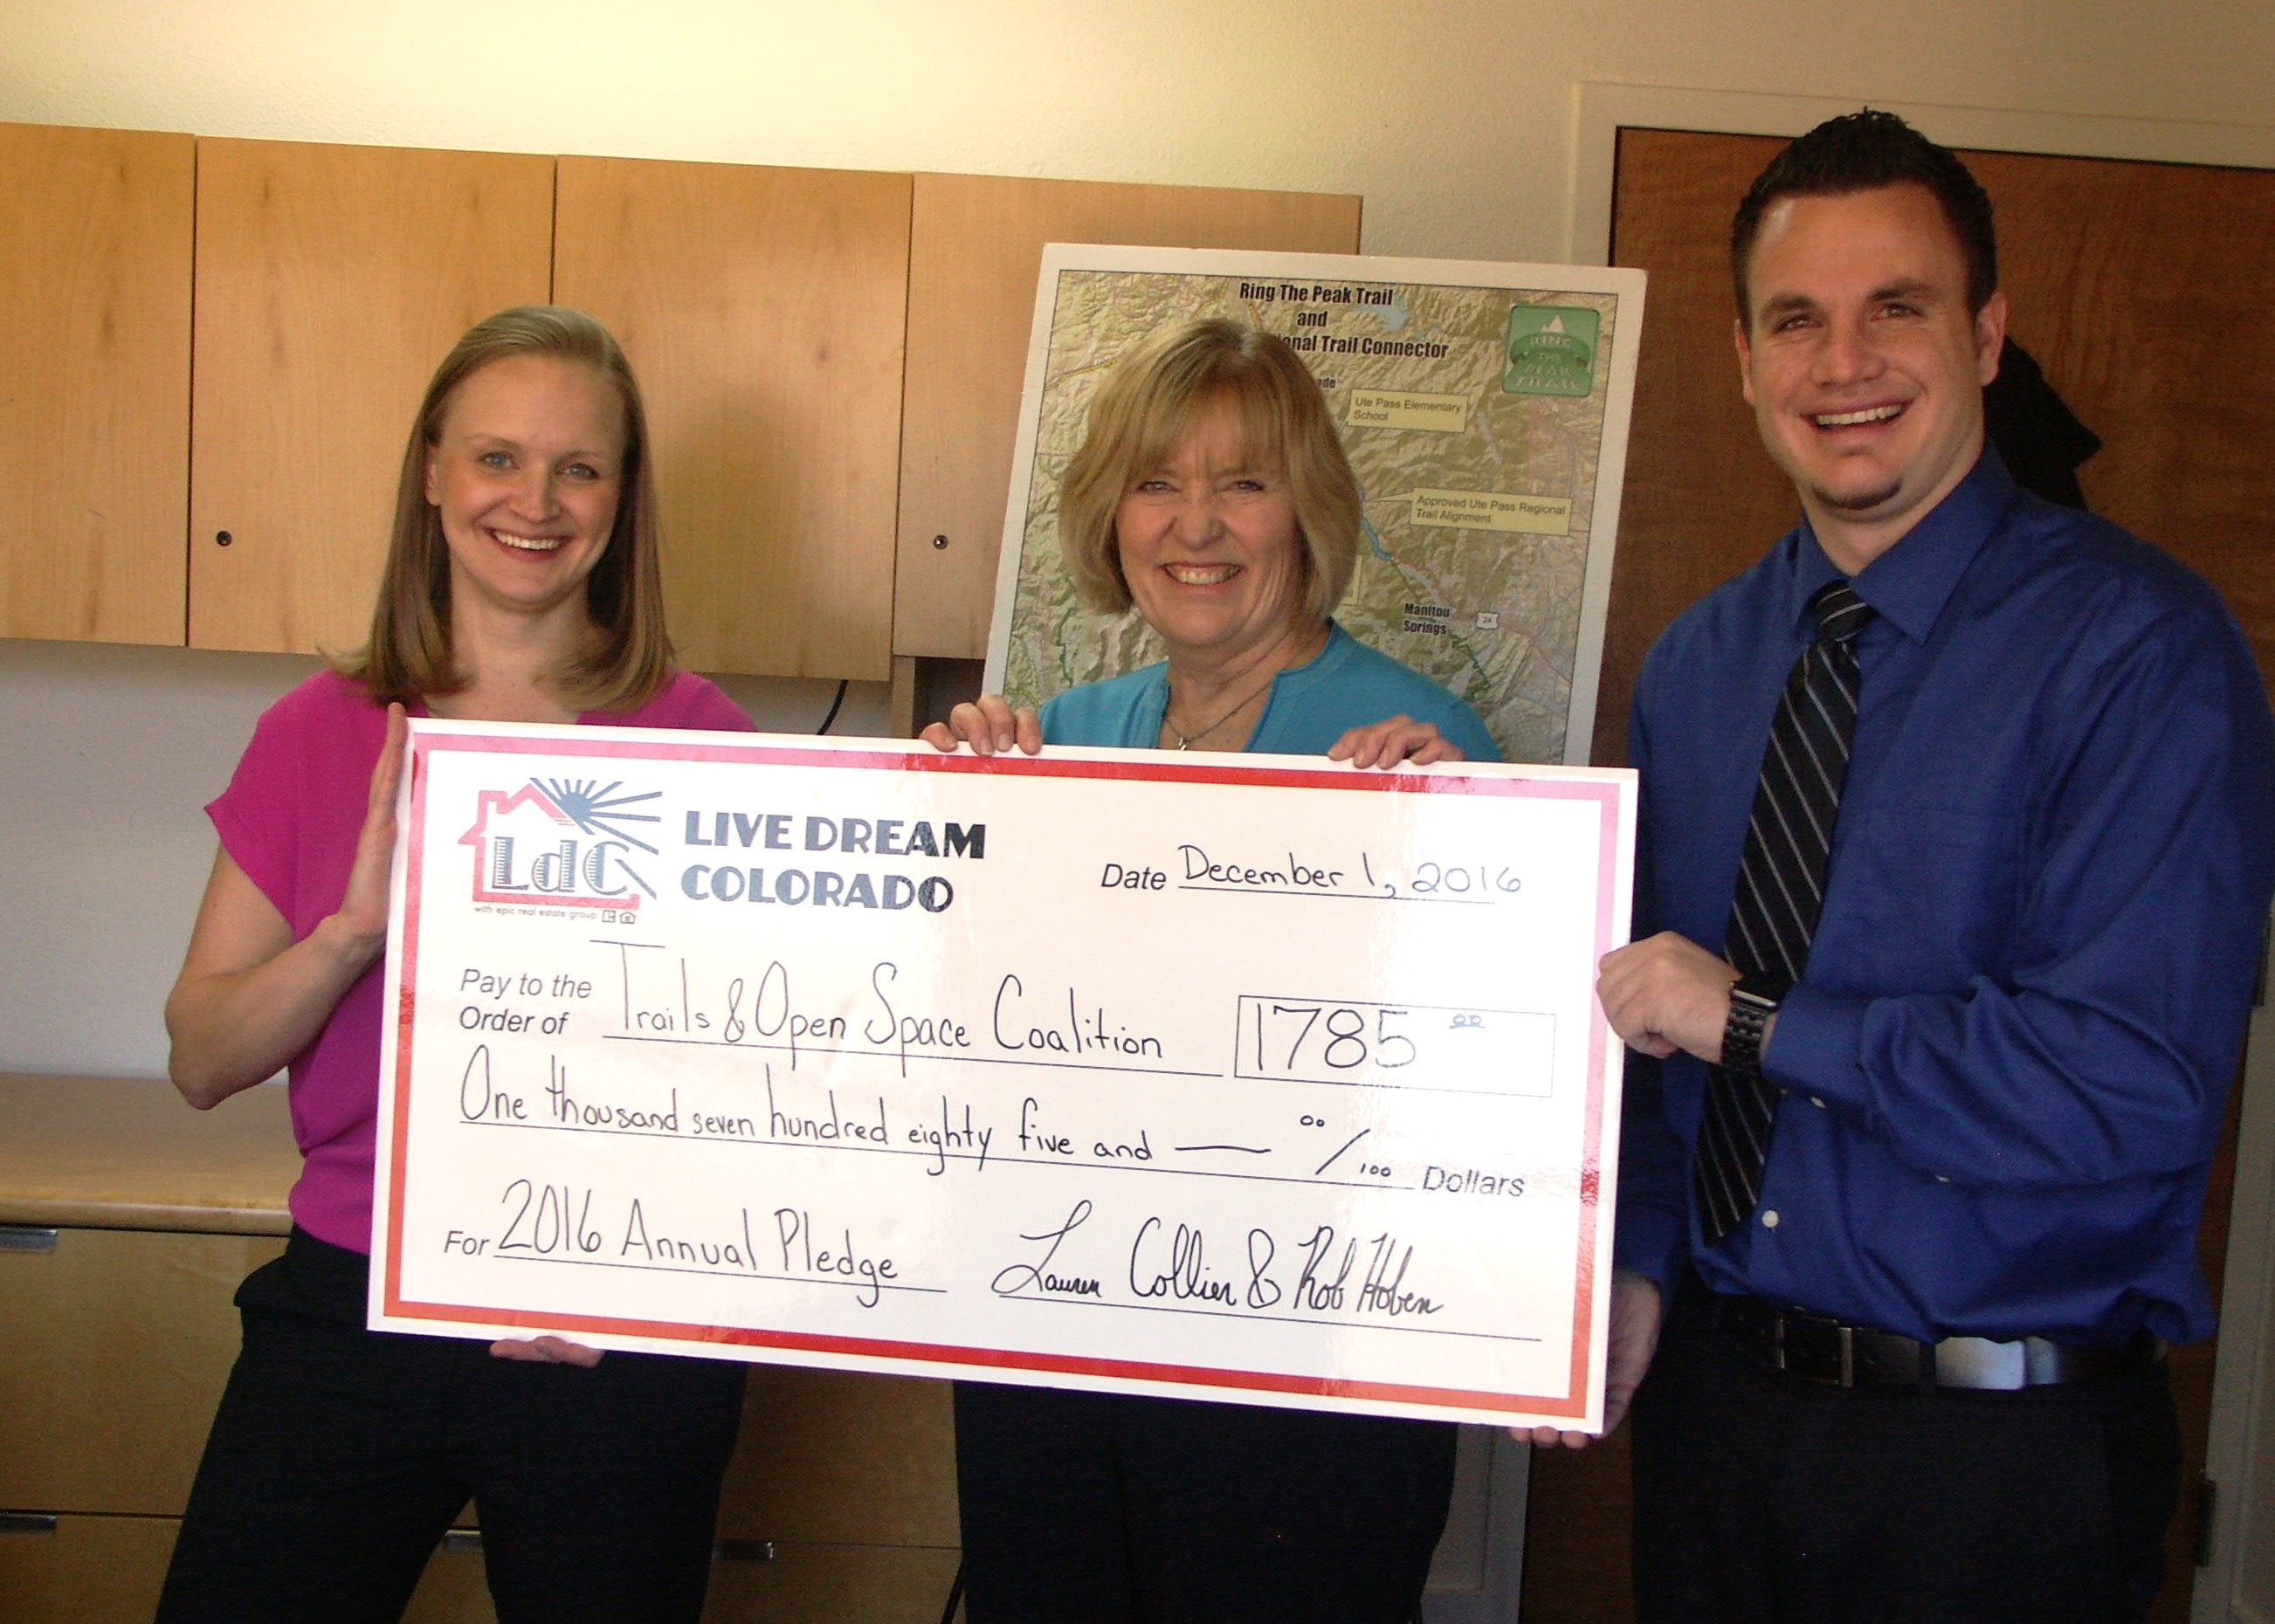 LIVE DREAM COLORADO DONATES A PORTION OF THEIR 2016 ANNUAL PROCEEDS TO TRAILS AND OPEN SPACE COALITION TO HELP PROTECT NATURAL OUTDOOR PLACES IN COLORADO SPRINGS